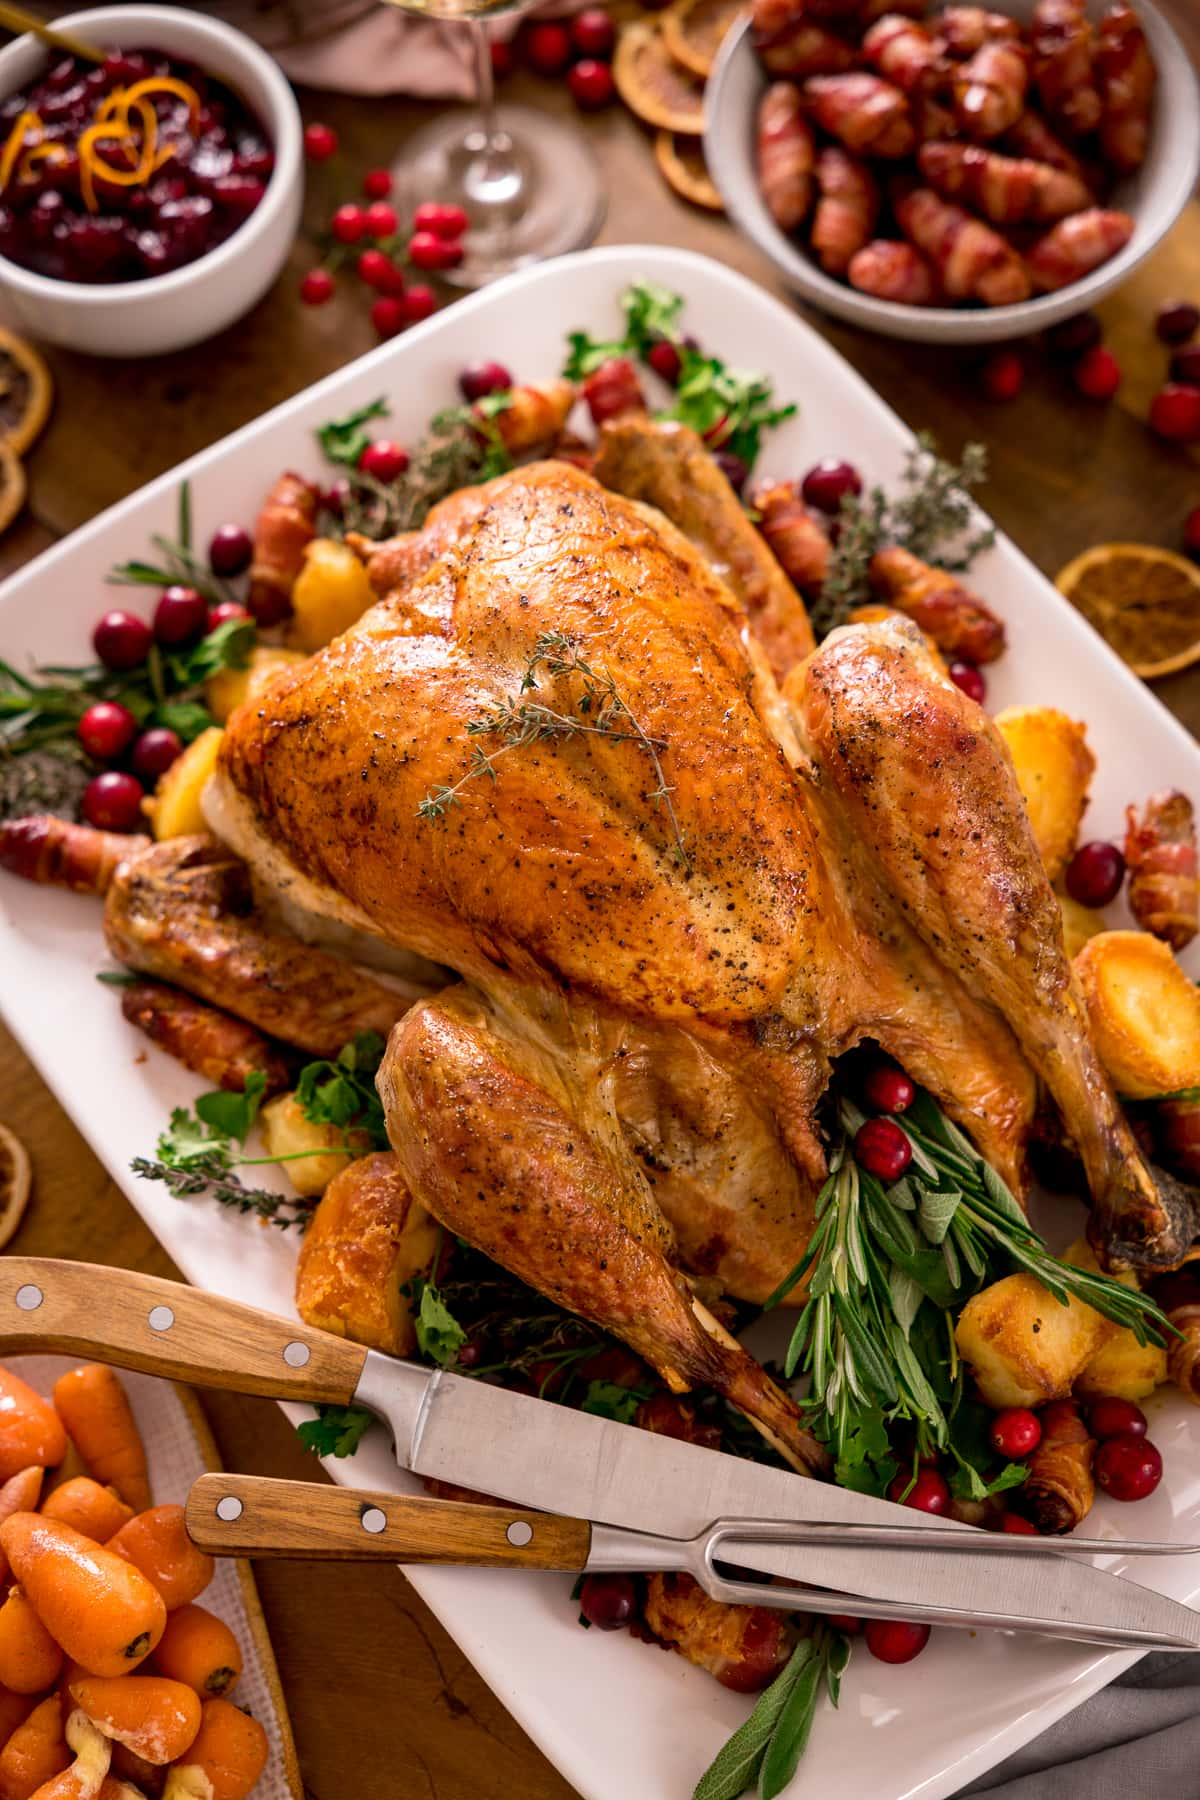 Roast turkey on a white plate with herbs, side dishes and a carving knife and fork on the plate.